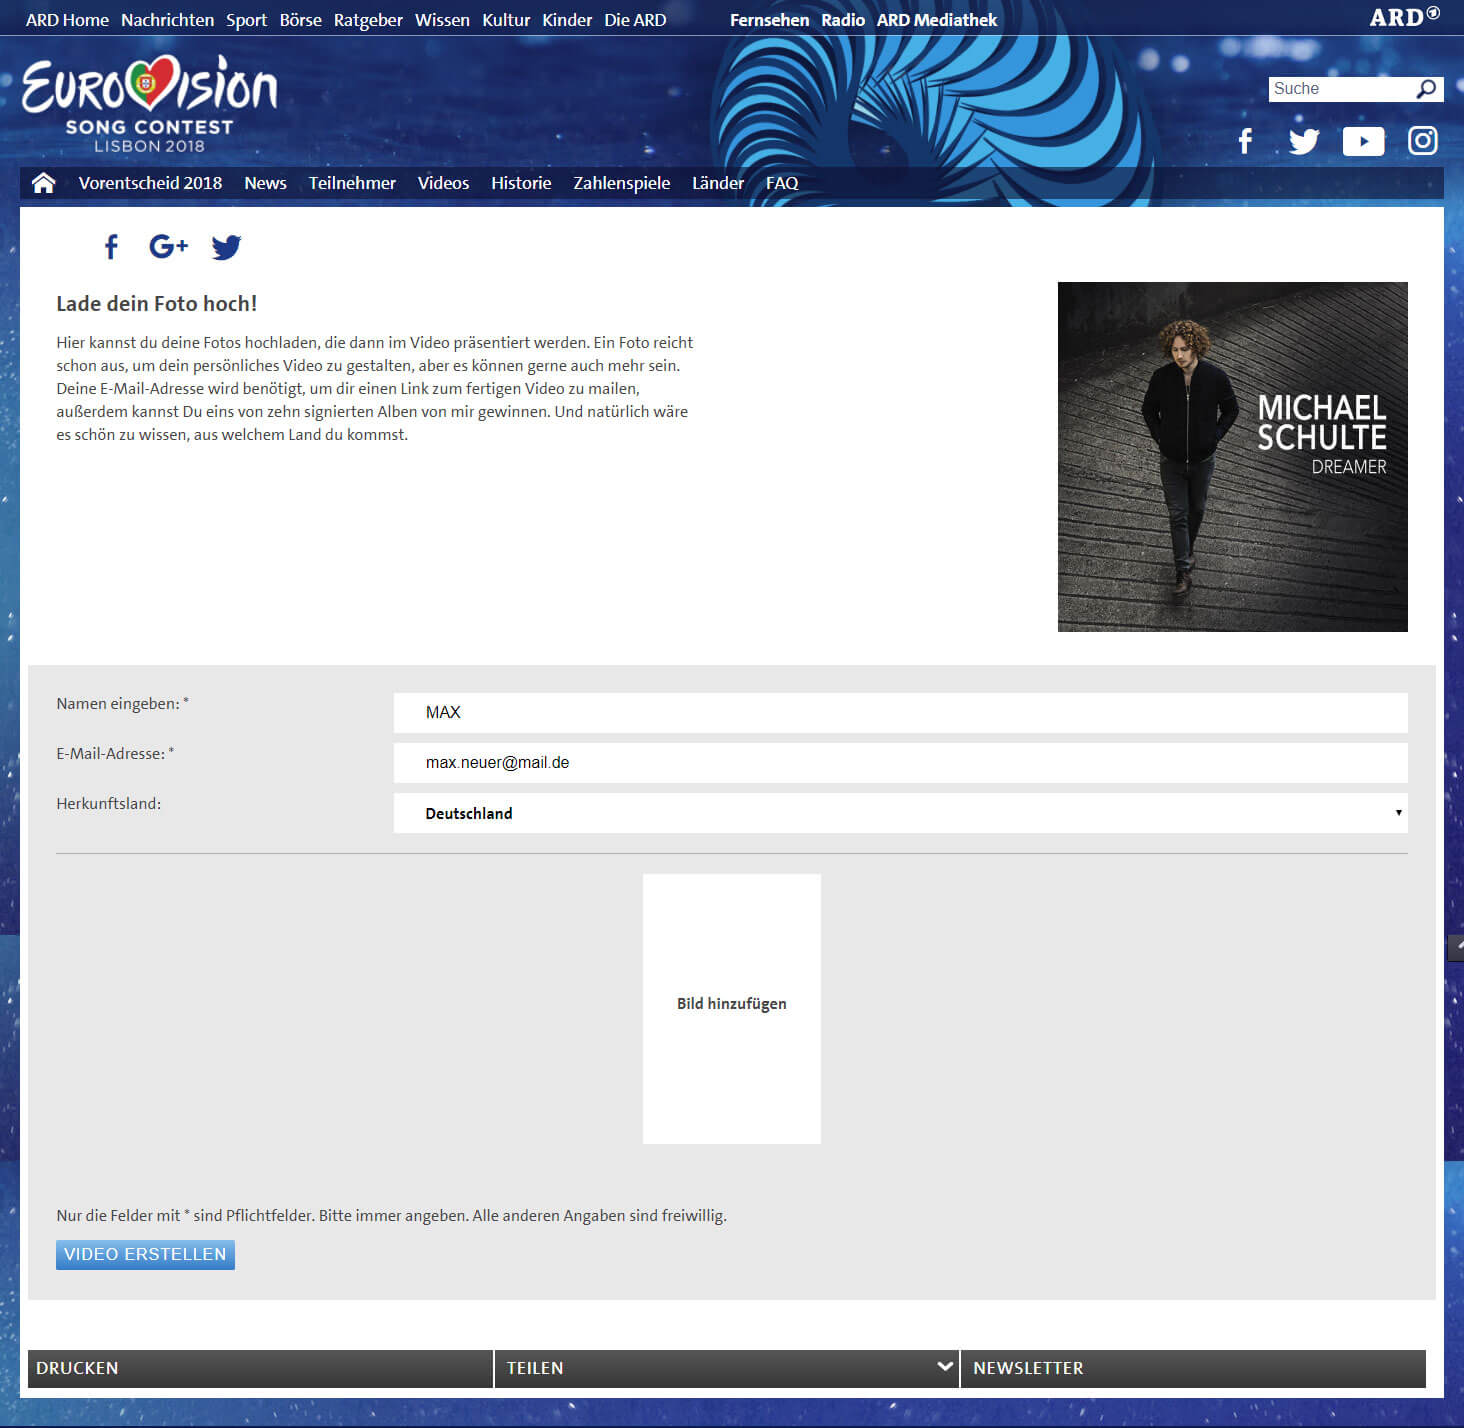 Video Personalisierung für Eurovision Song Contest Interface